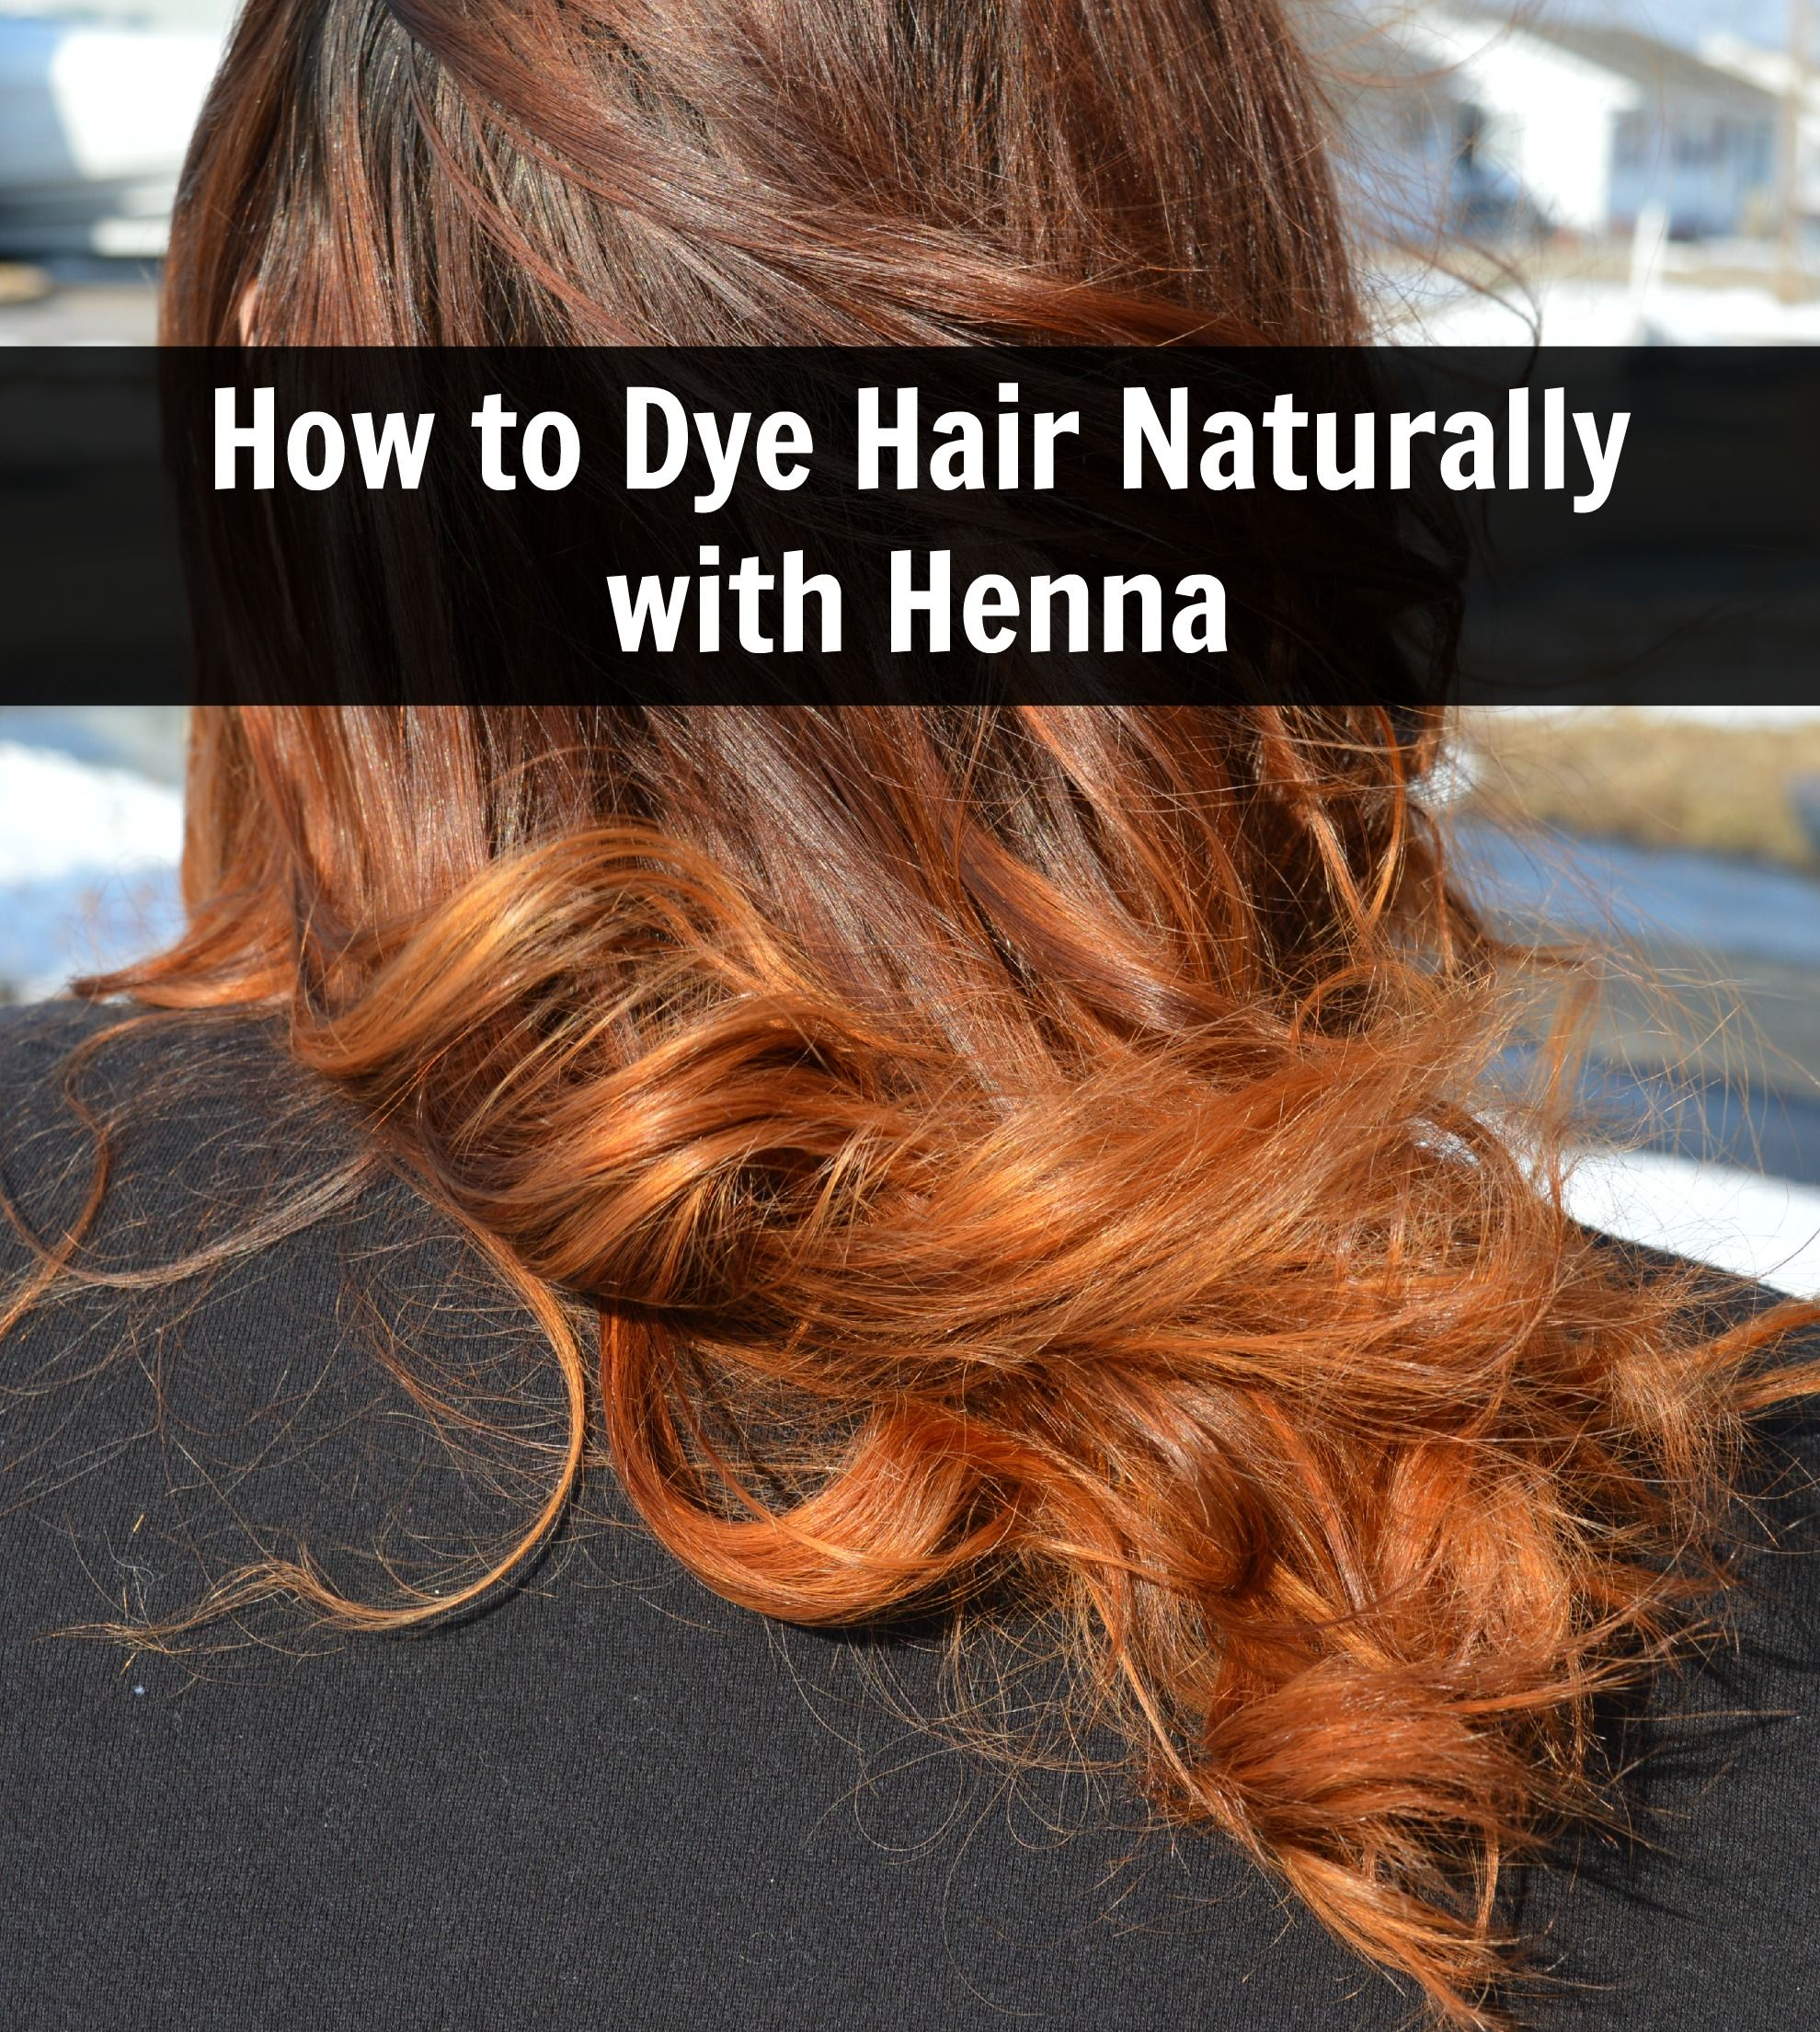 how to dye hair naturally with henna | All natural | Pinterest | Dye ...